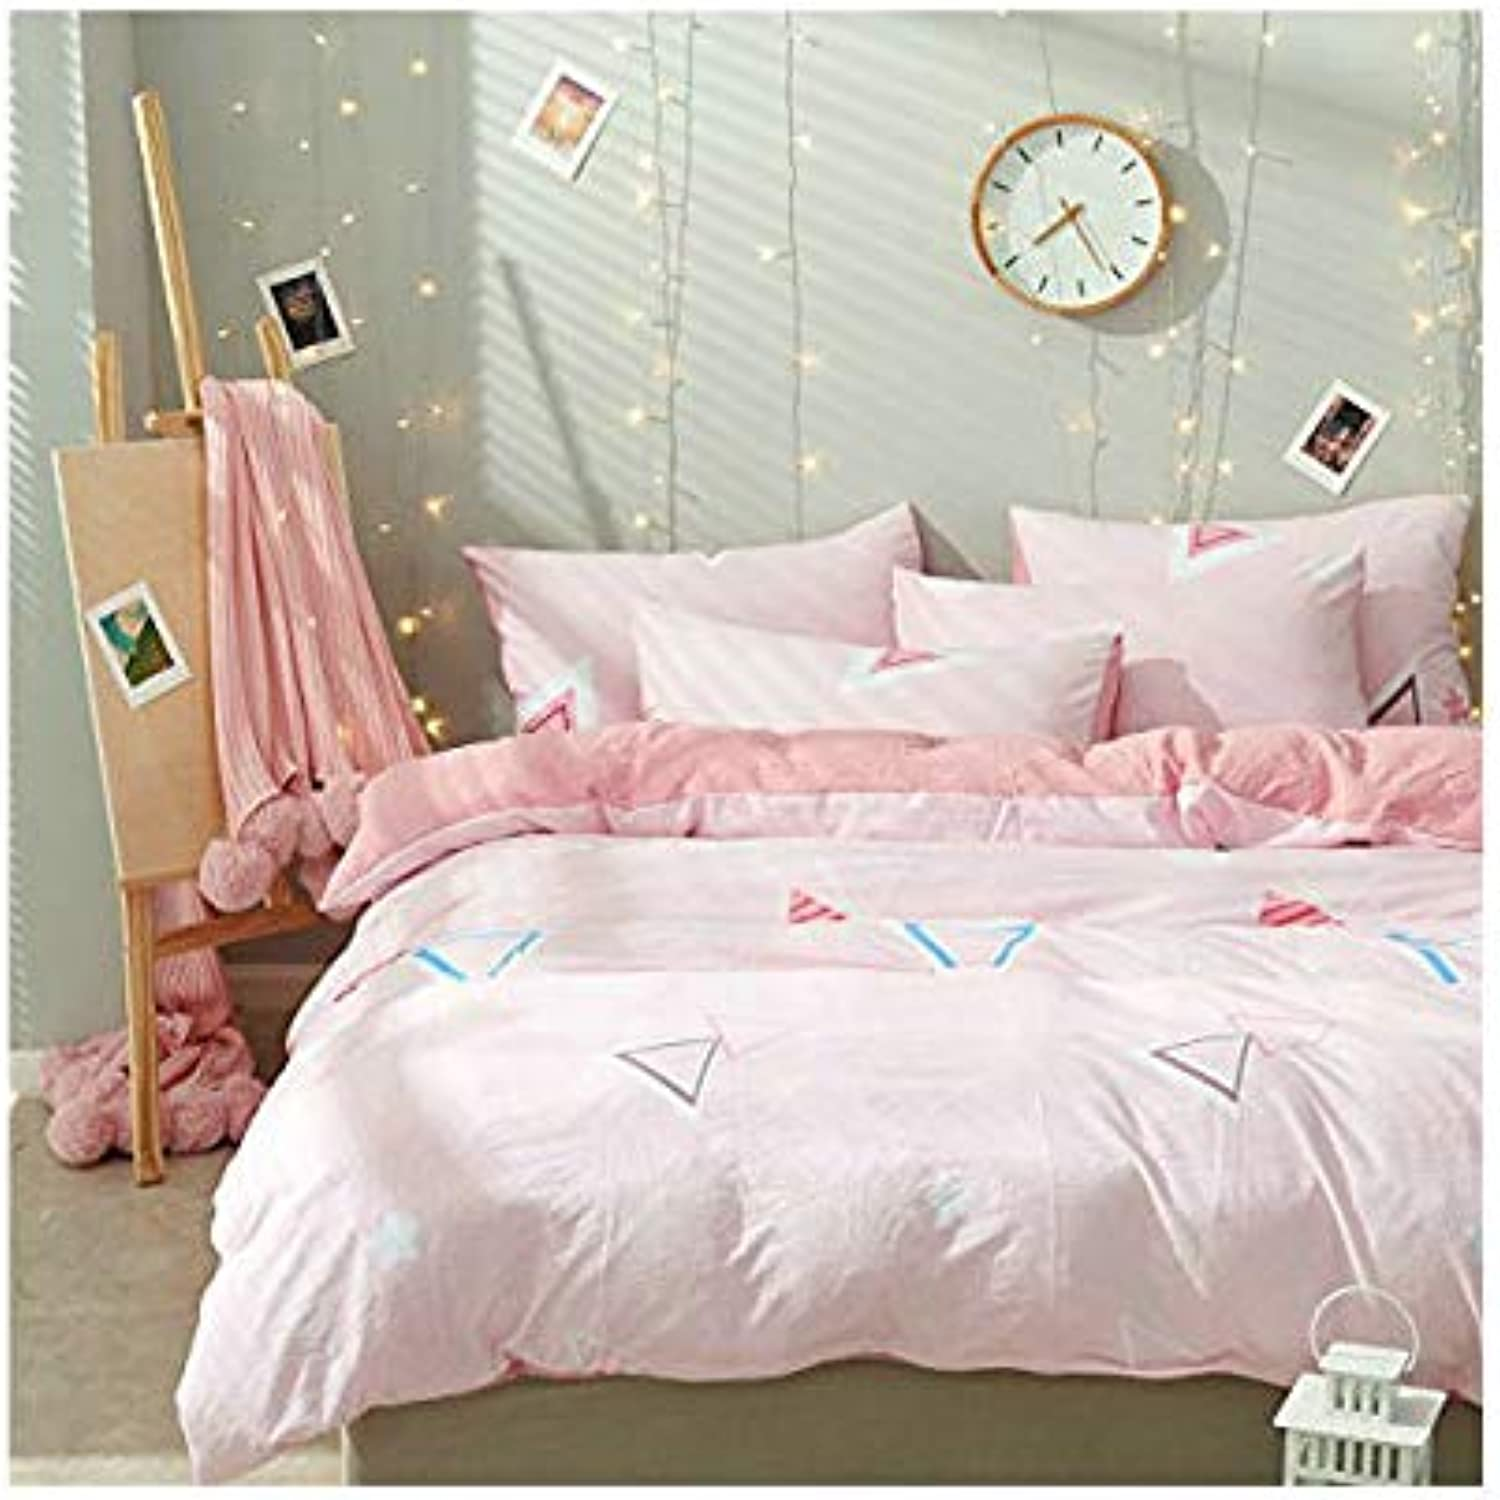 4pcs Cotton Bedding Autumn Winter Duvet Cover Without Comforter Fitted Bedsheet Pillowcases XS Twin Full Queen Princess Supersoft Cat Range Designs (Twin, 3pcs, Dream, Pink)